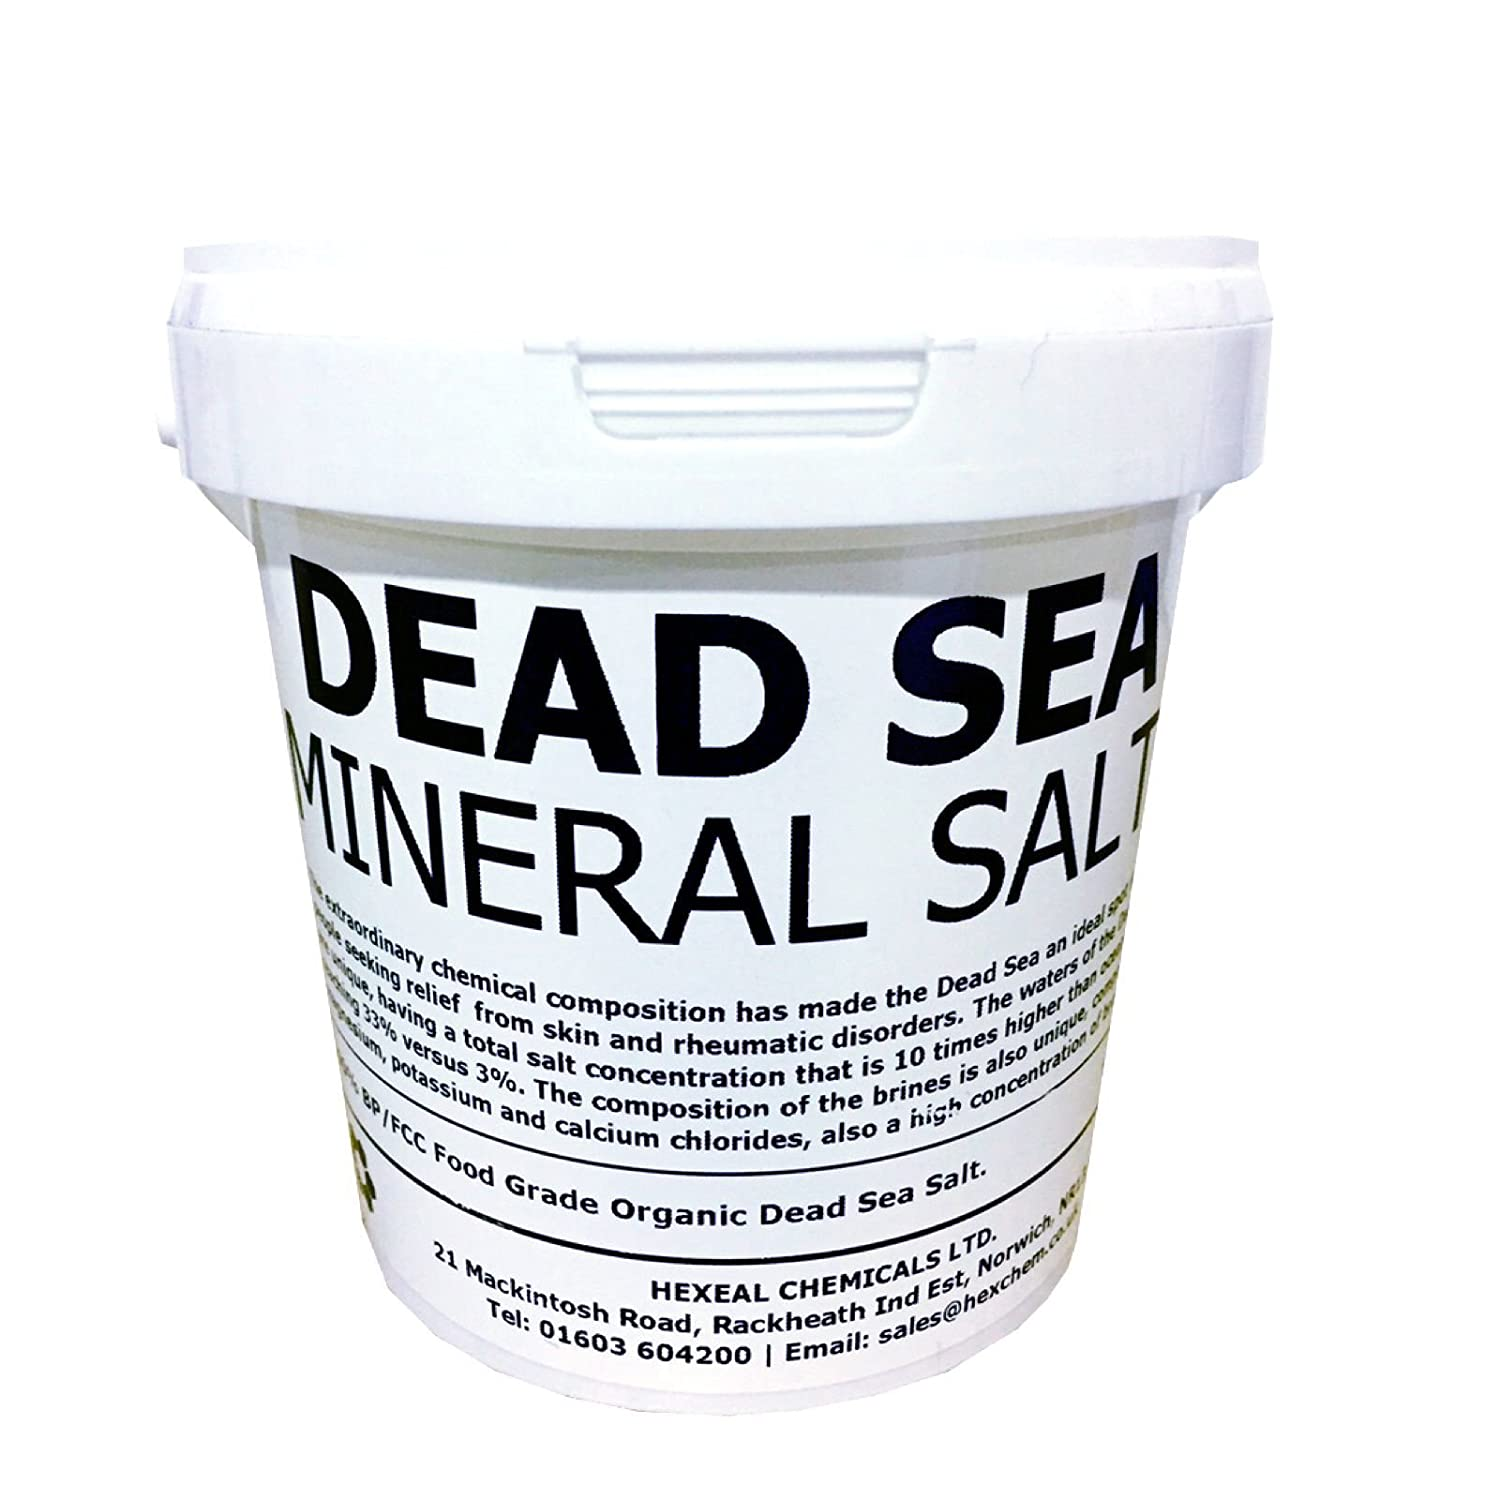 DEAD SEA SALT | 1KG BUCKET | 100% Natural | FCC Food Grade Dead Sea Works Ltd.